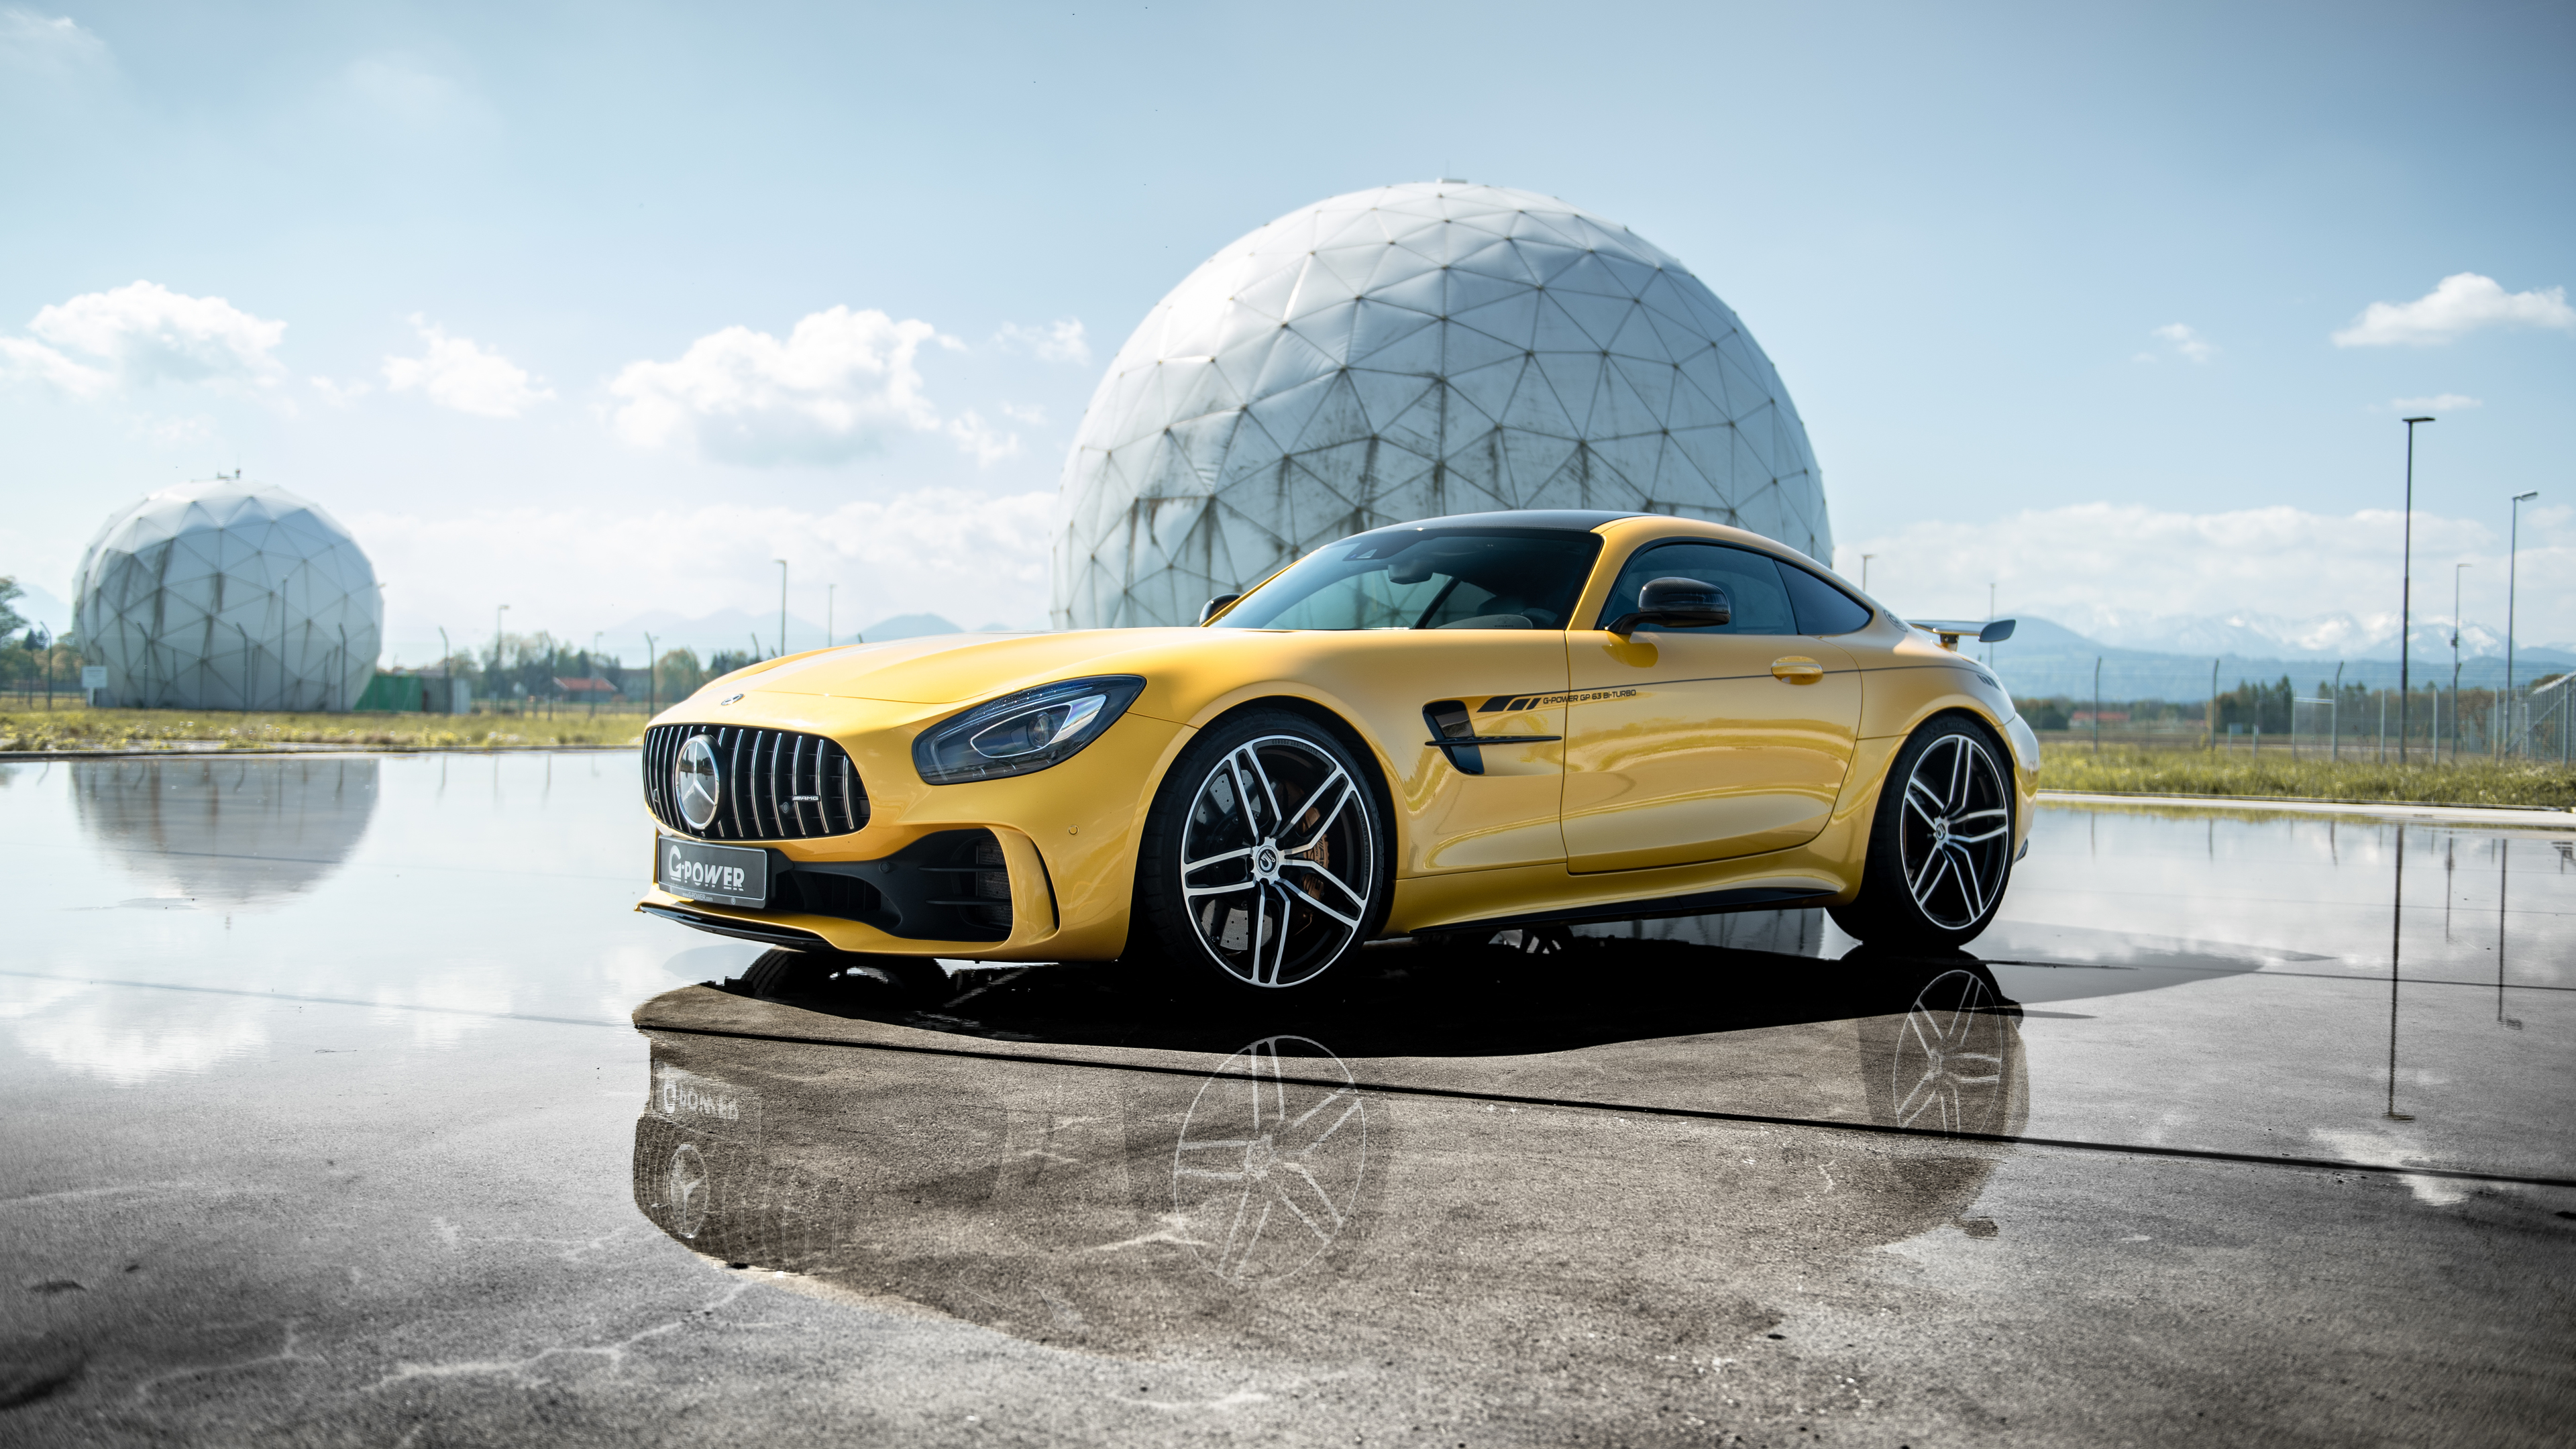 g power mercedes amg gt r 2019 1560534357 - G Power Mercedes AMG GT R 2019 - mercedes wallpapers, mercedes g class wallpapers, mercedes benz wallpapers, mercedes amg wallpapers, hd-wallpapers, cars wallpapers, 4k-wallpapers, 2019 cars wallpapers